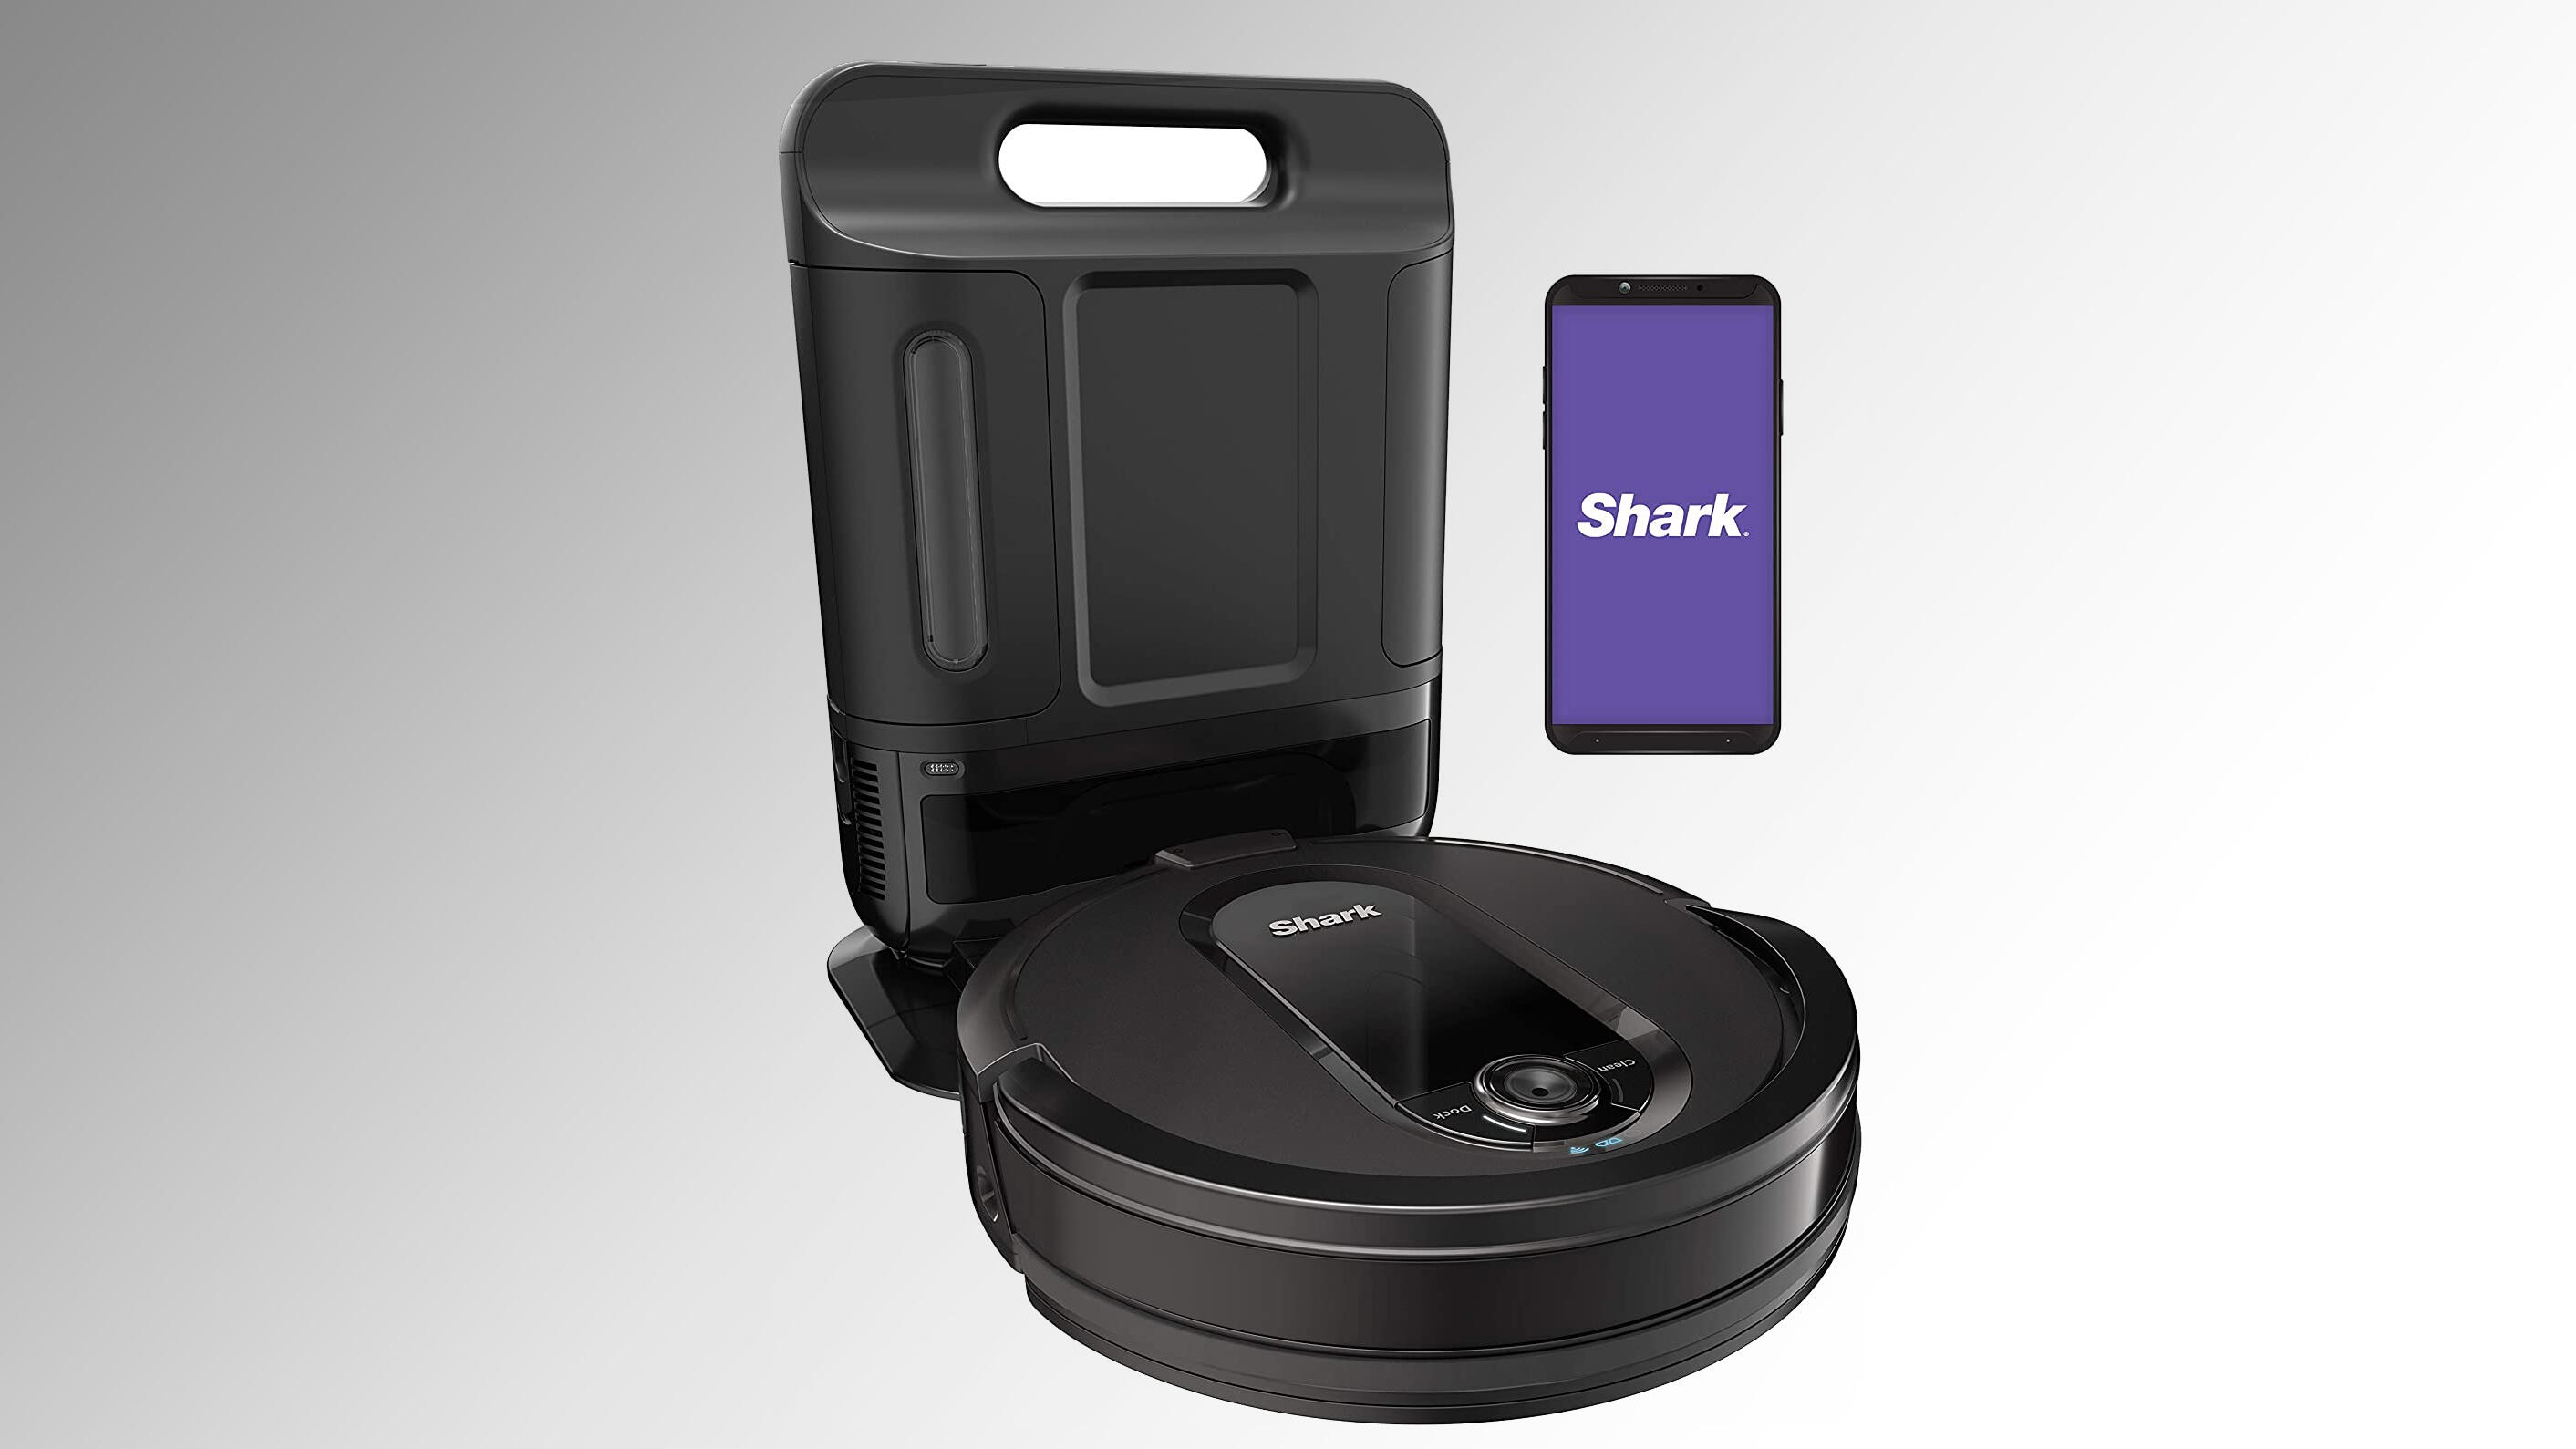 Get Shark's self-emptying Shark IQ RV1001AE robot vacuum for just $419